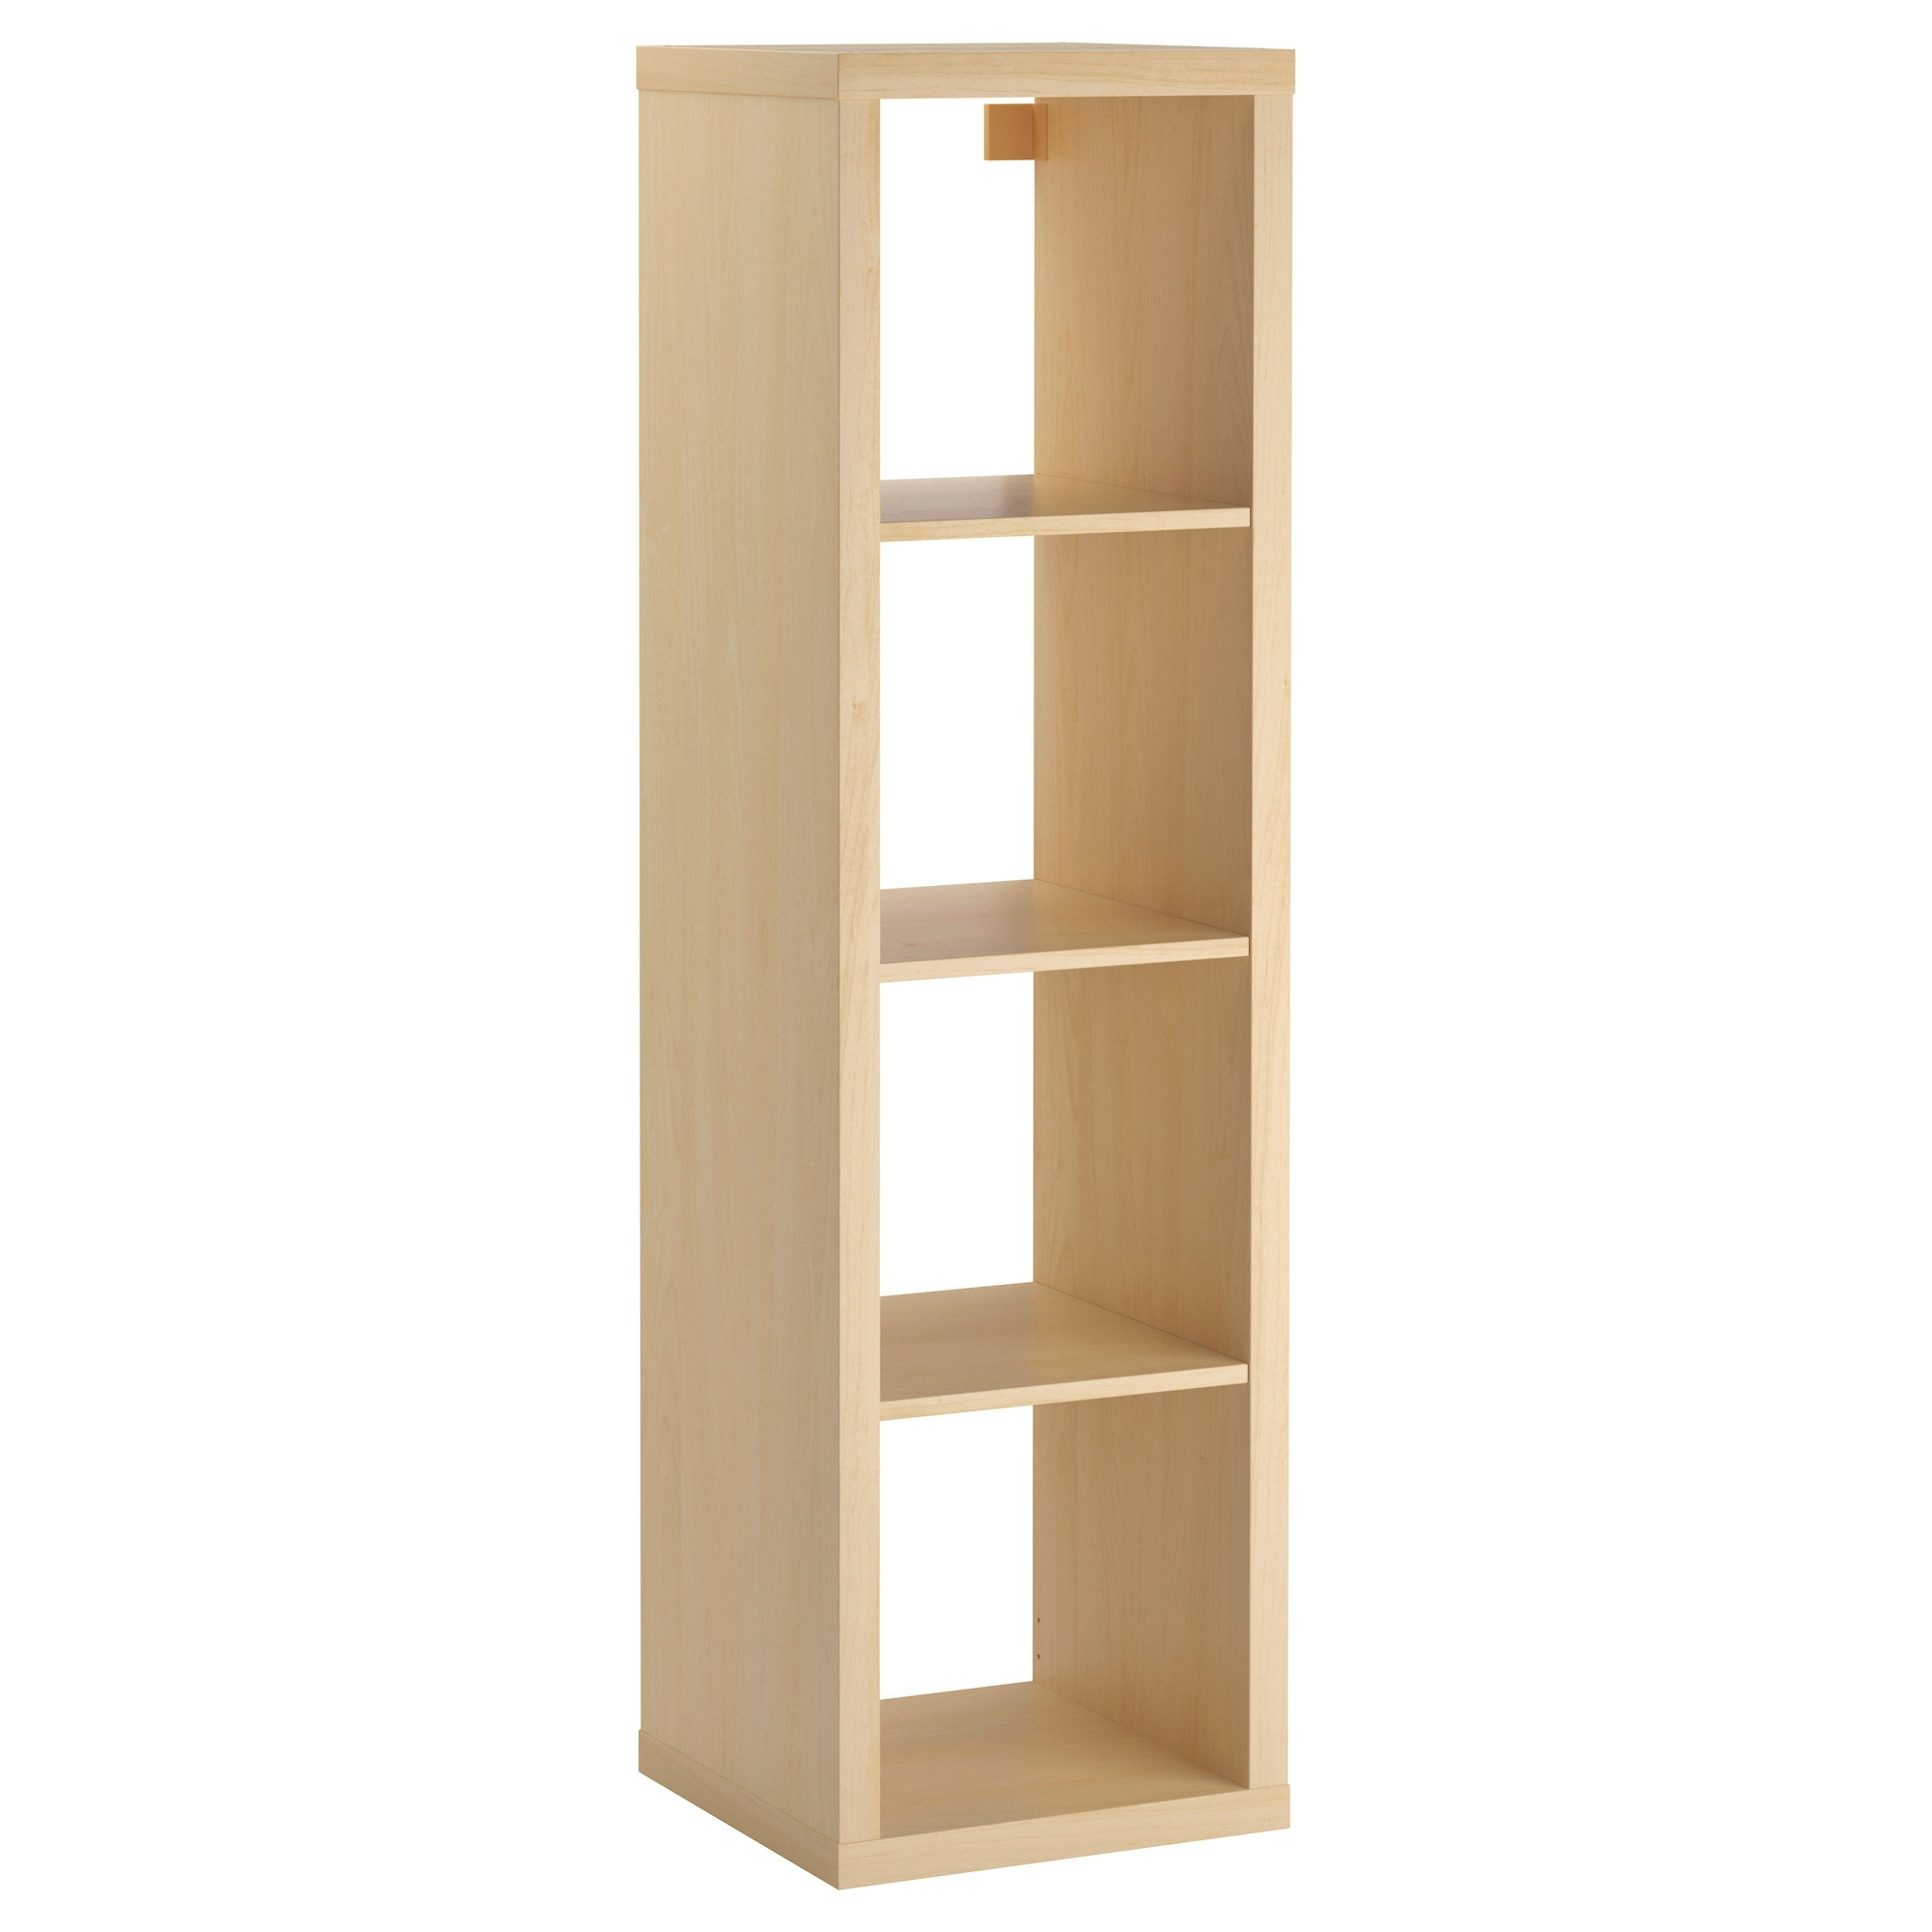 Ikea Expedit Bookcases Throughout Recent Kallax Shelf Unit – Birch Effect – Ikea (Gallery 7 of 15)